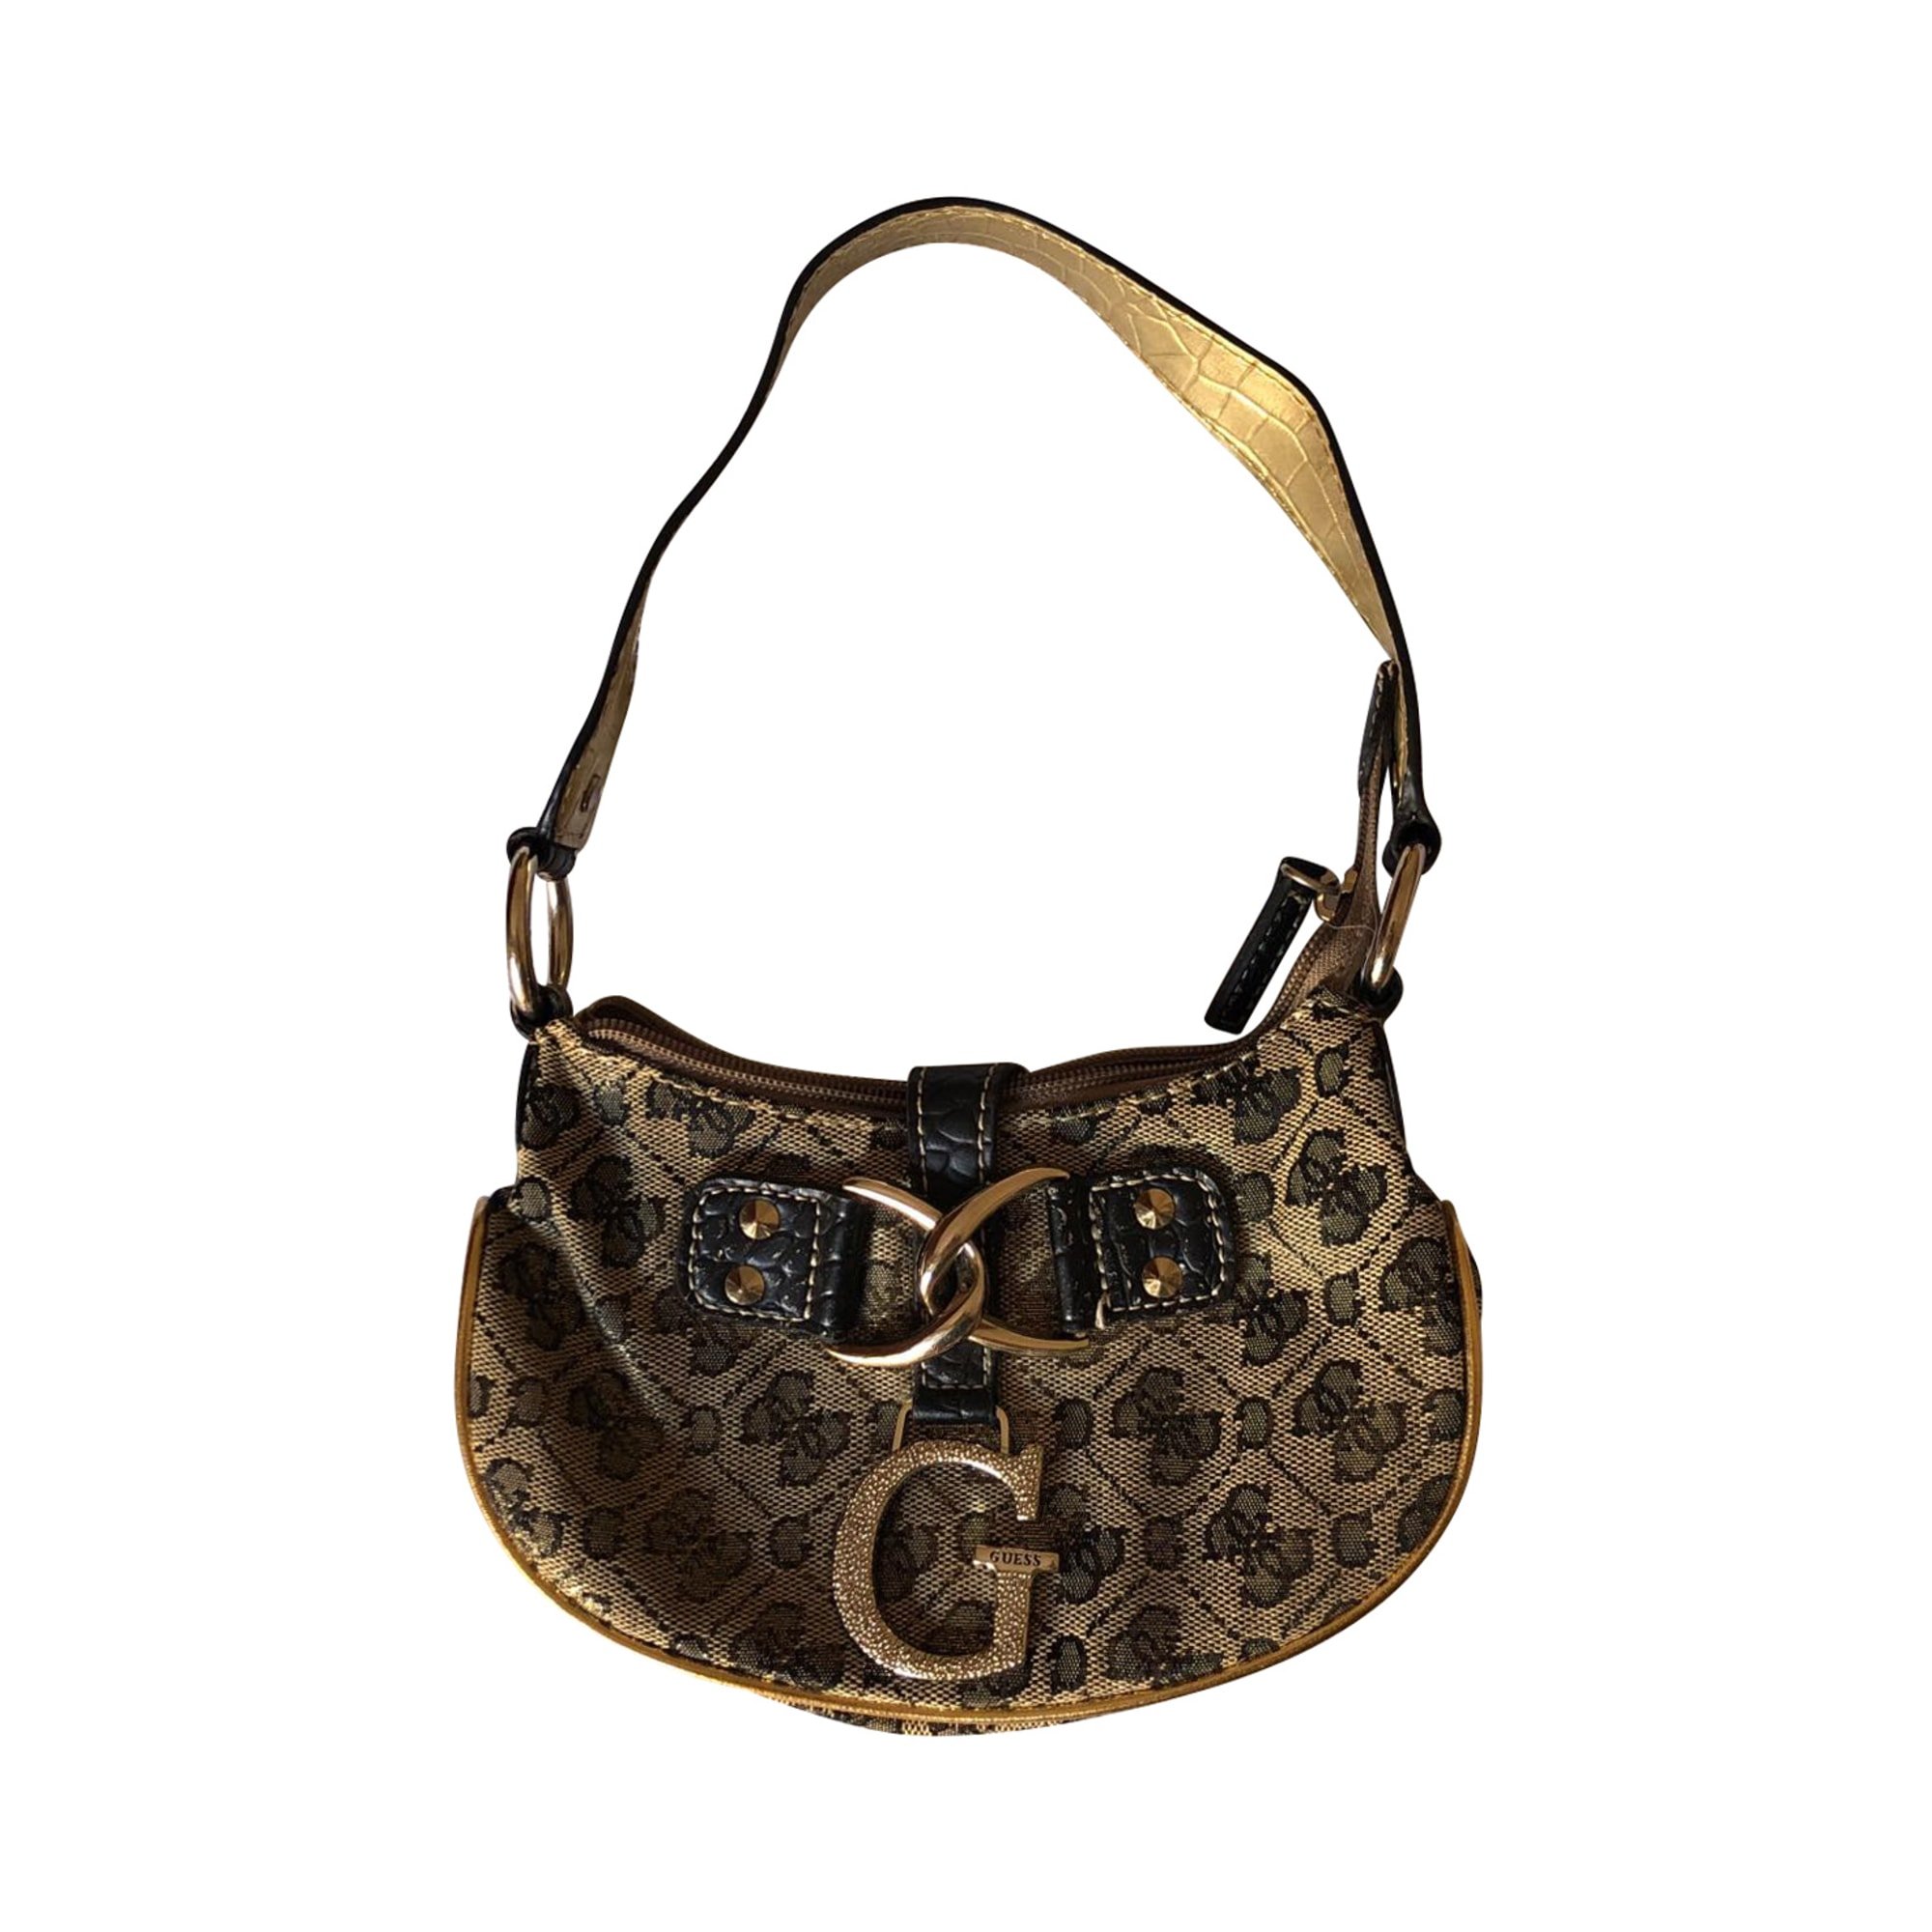 Leather Handbag GUESS Golden, bronze, copper